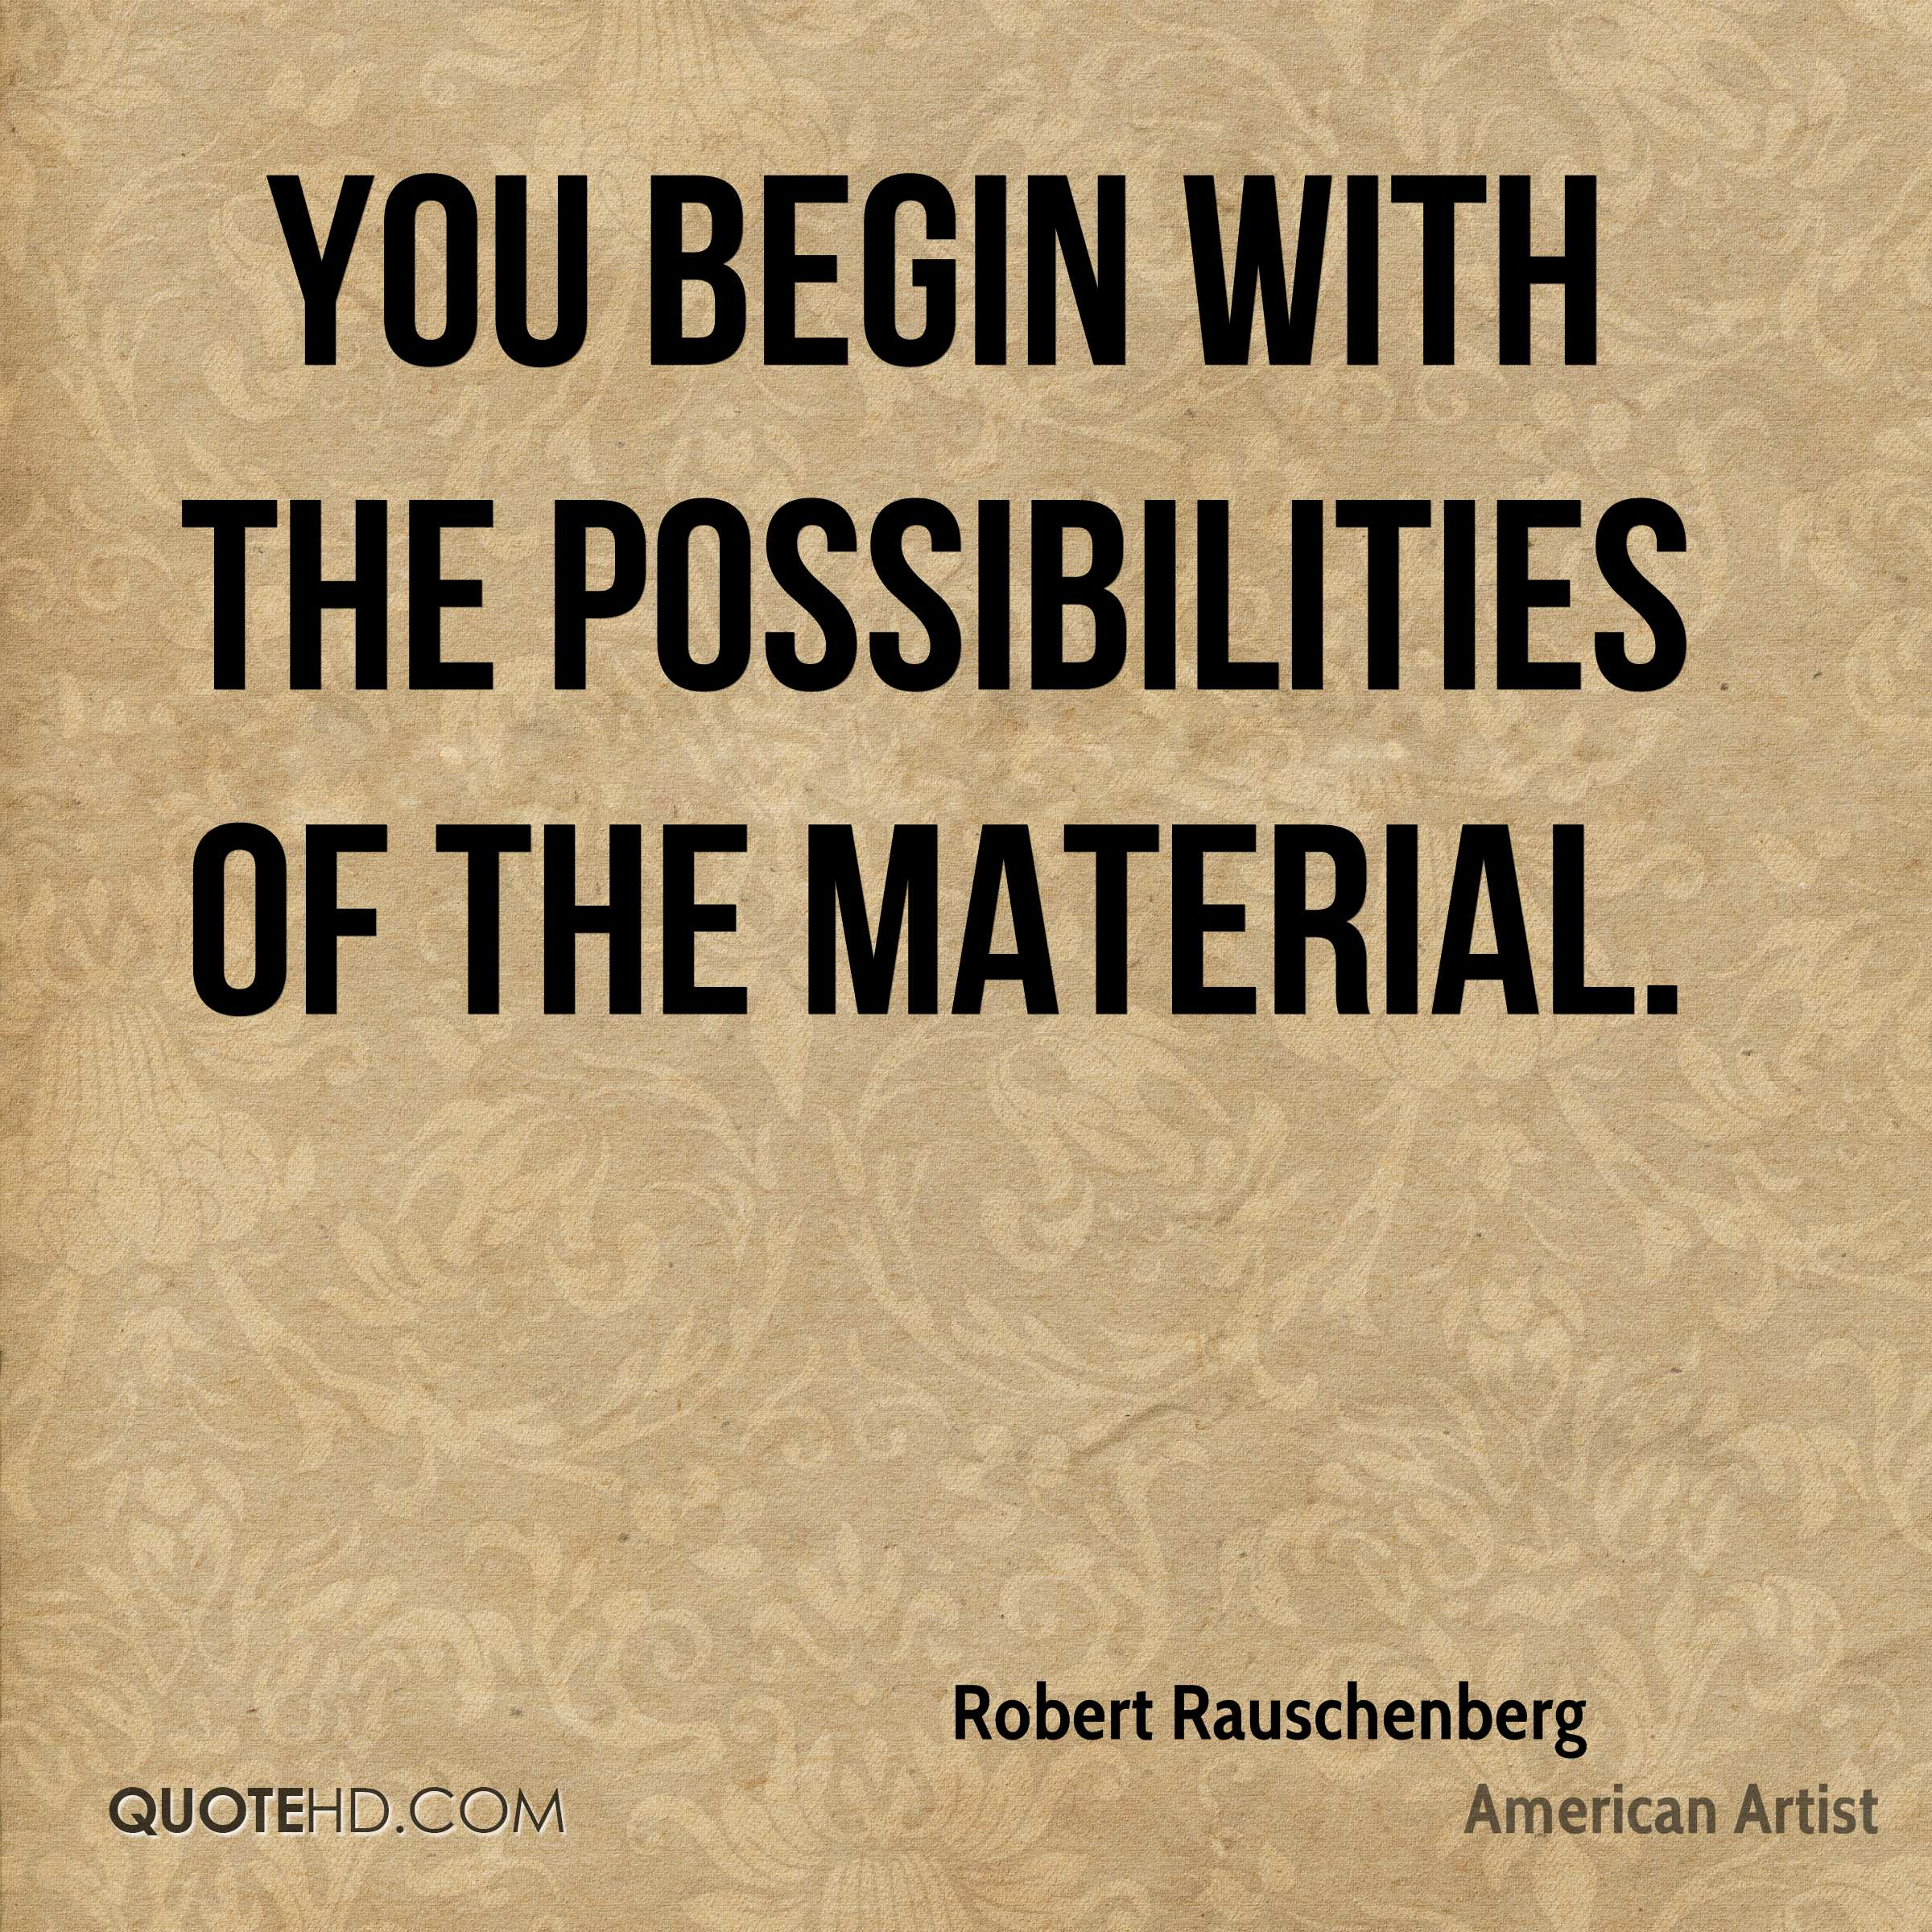 You begin with the possibilities of the material.